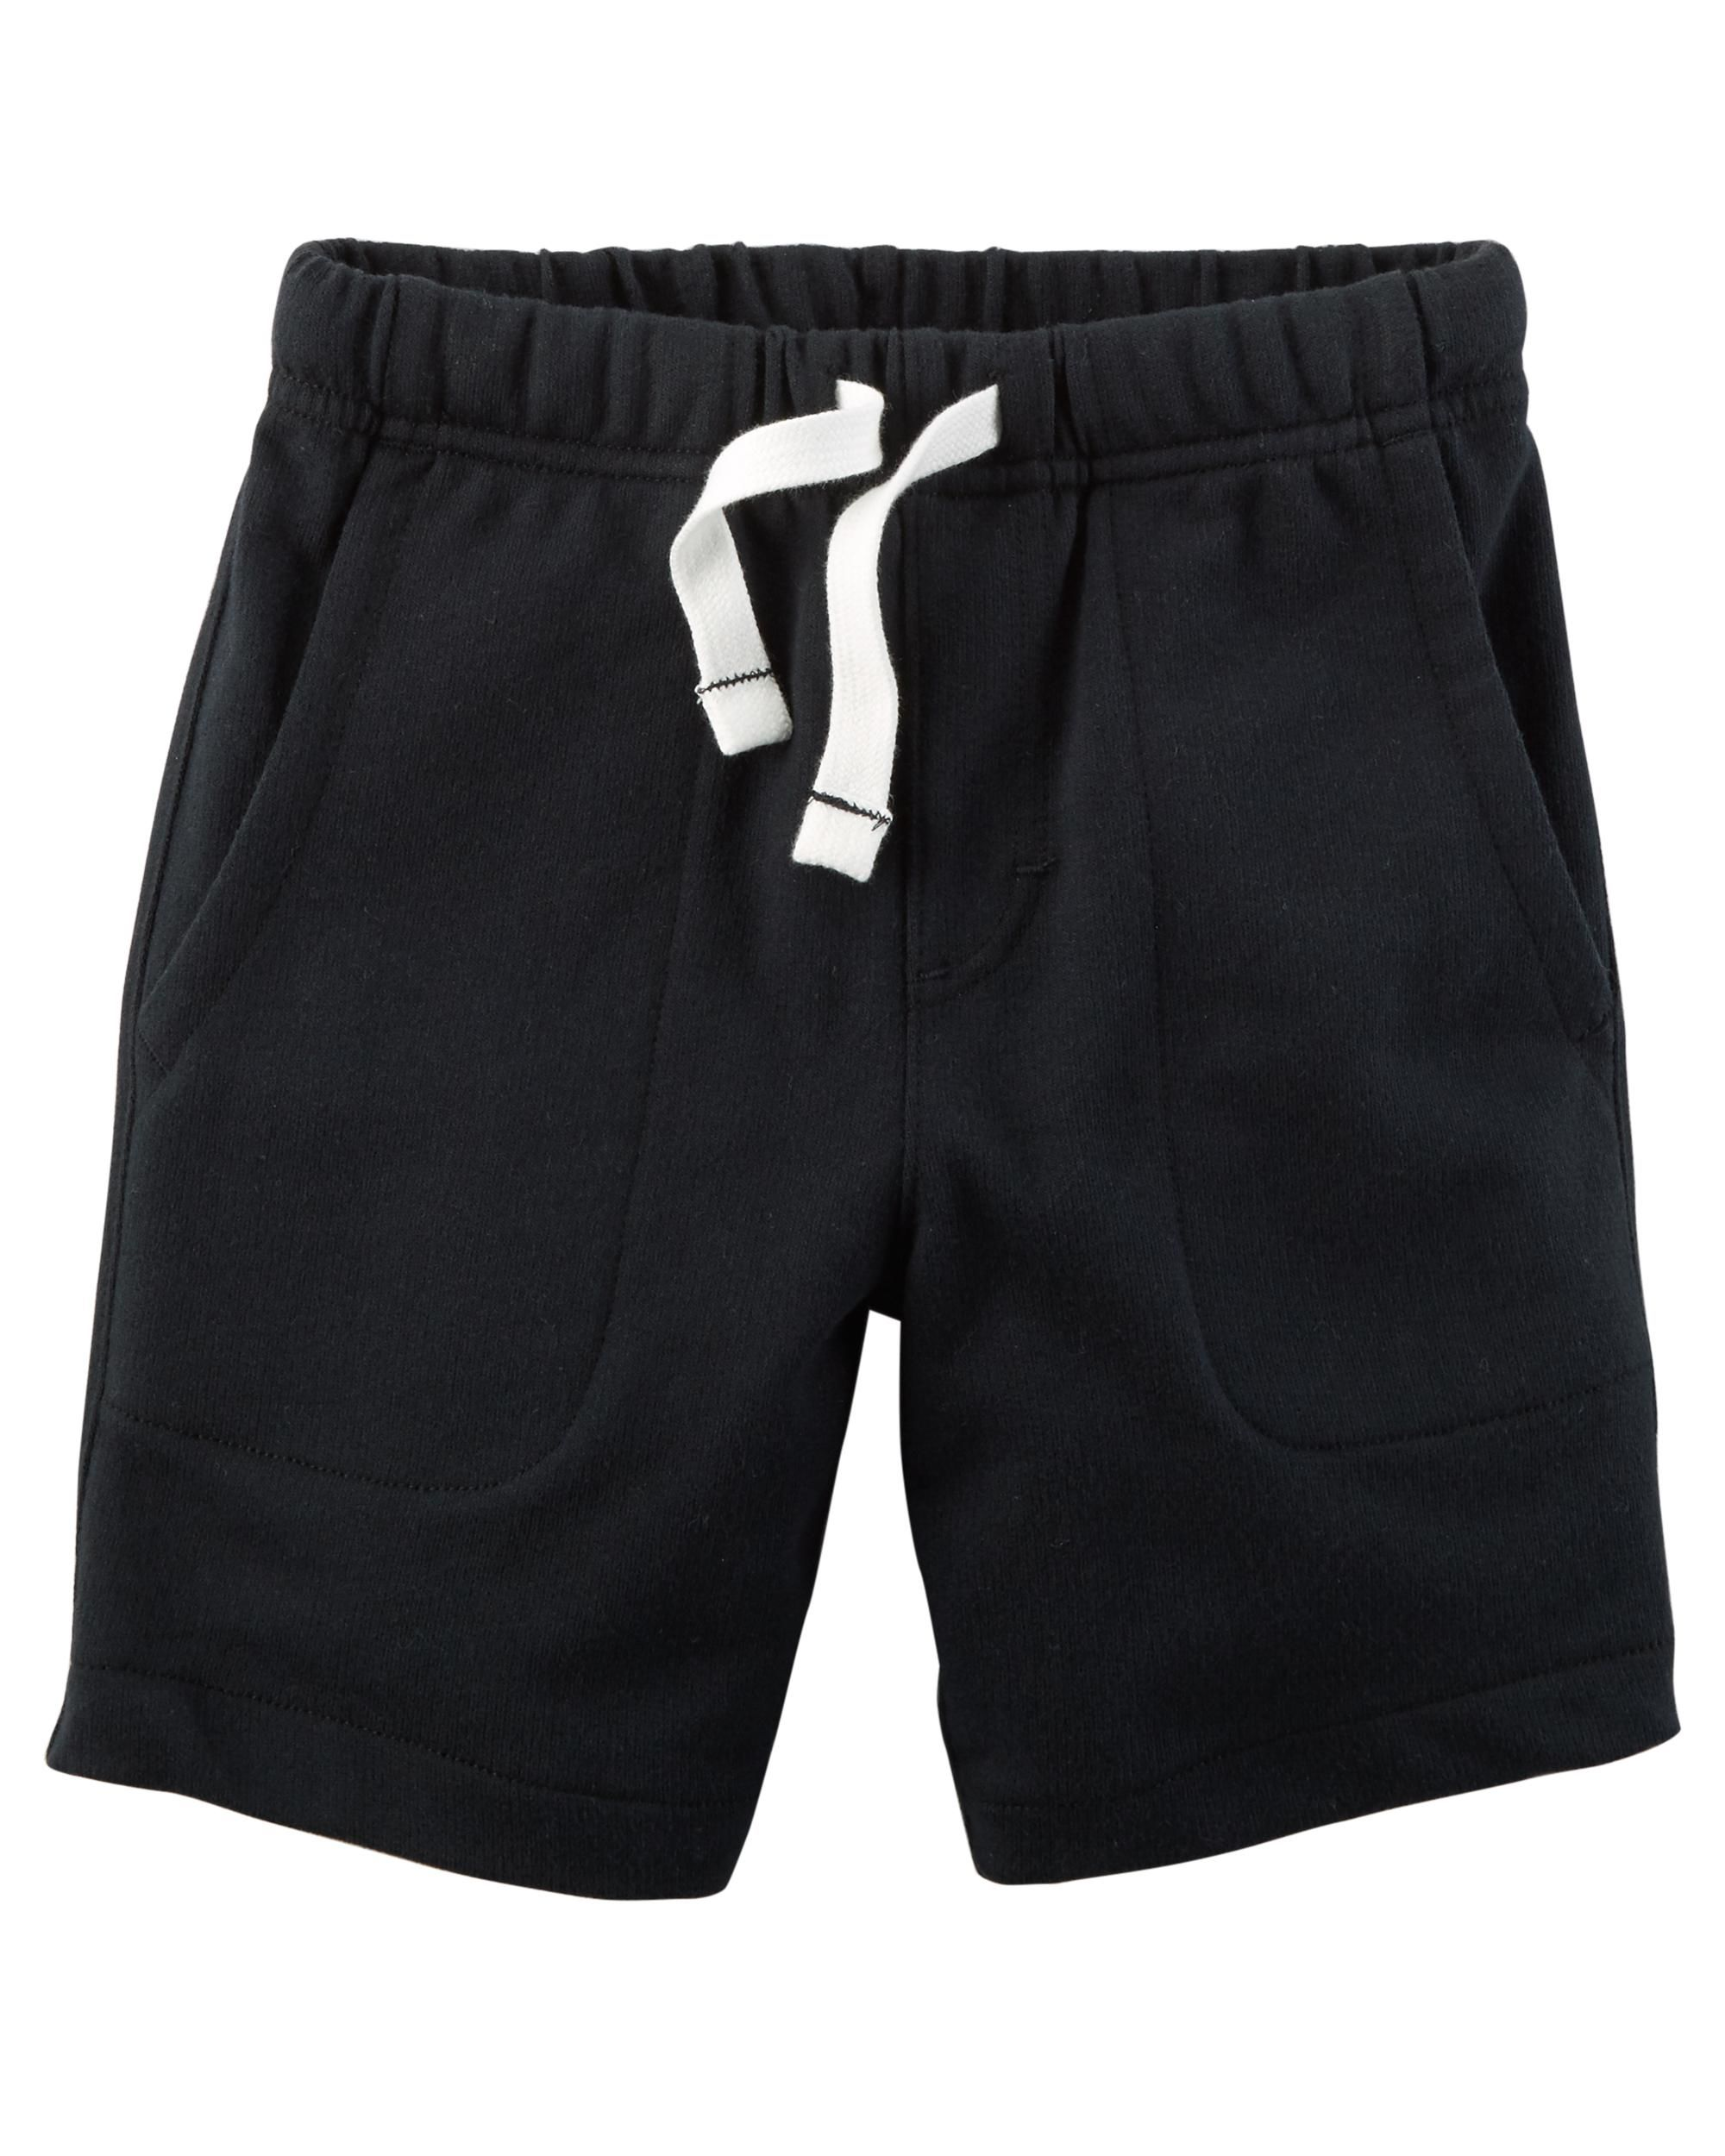 Carter's Boys' French Terry Shorts